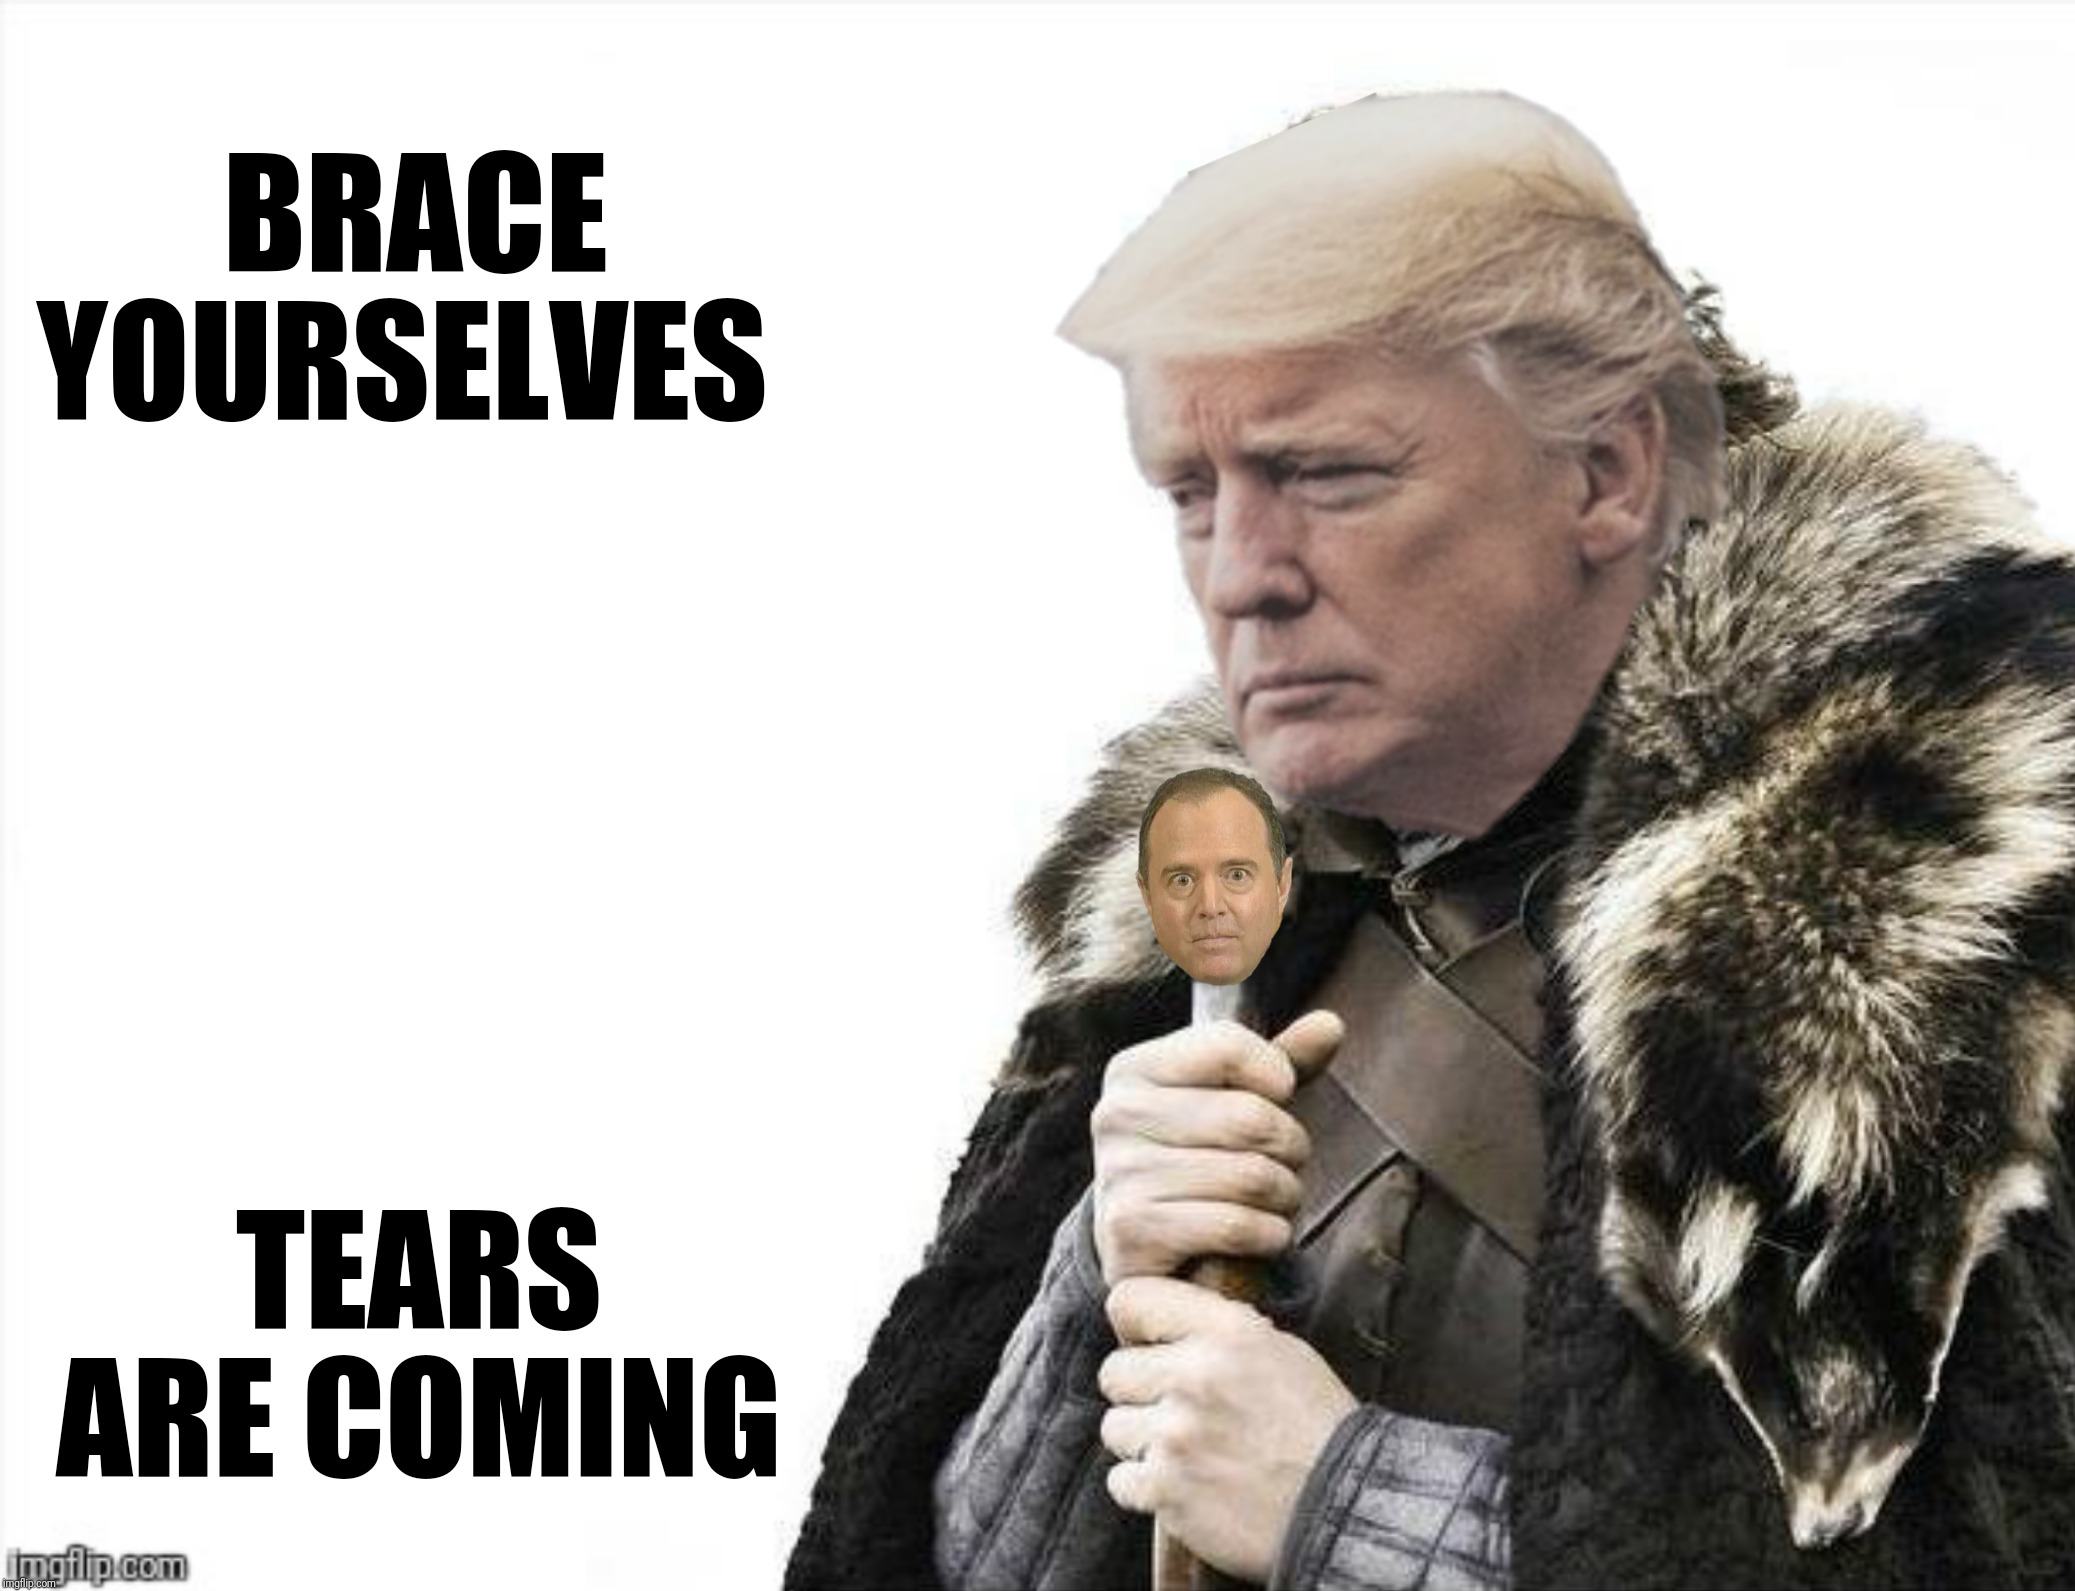 Is that a pike? | BRACE YOURSELVES TEARS ARE COMING | image tagged in brace yourselves x is coming,donald trump,adam schiff,salty liberal tears | made w/ Imgflip meme maker